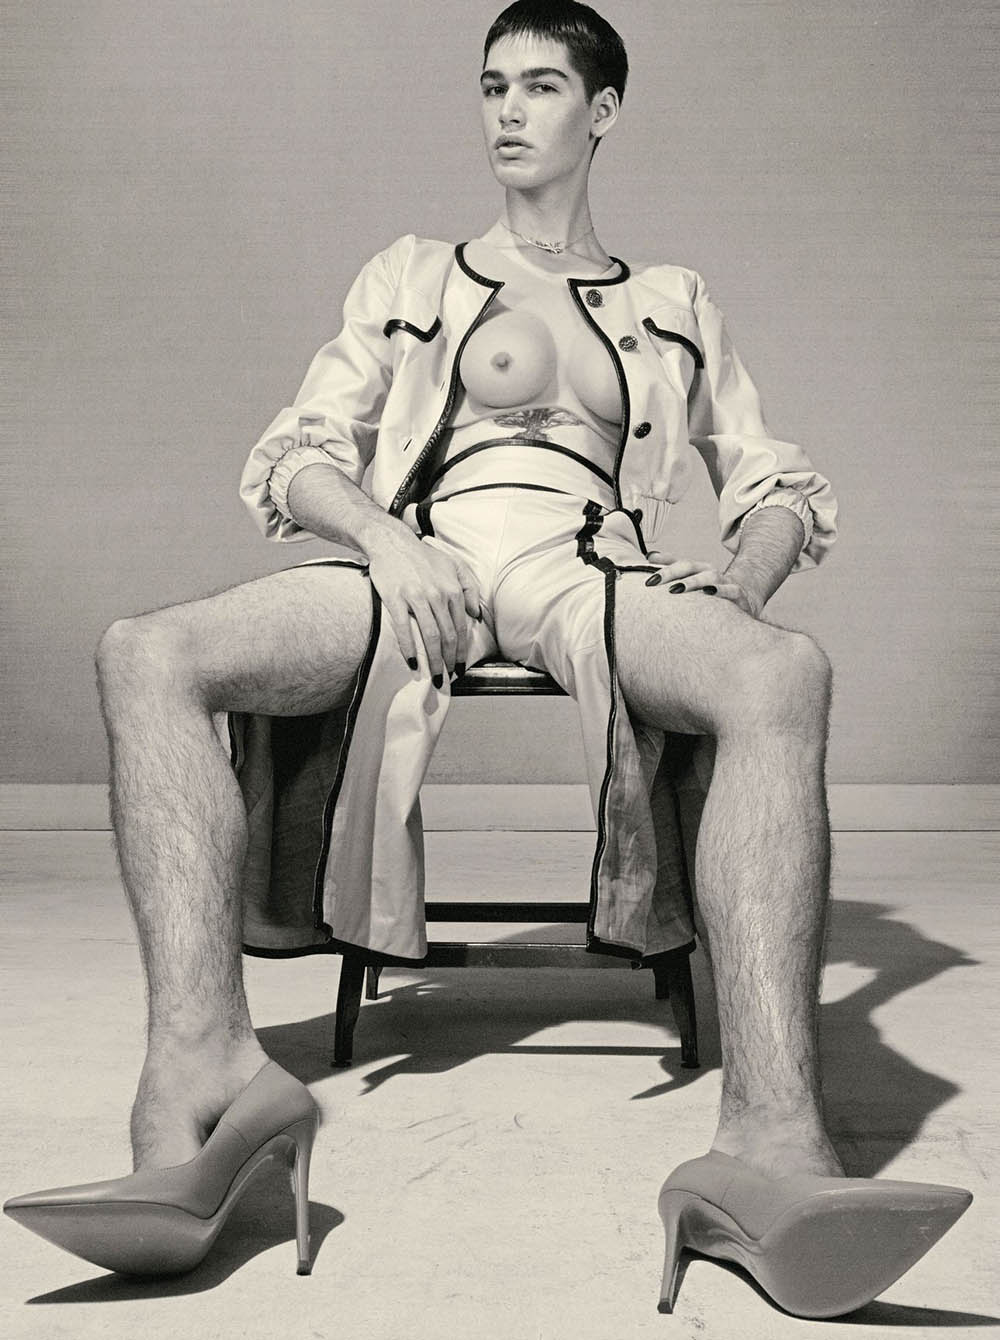 Deviating-From-Gender-by-Steven-Klein-for-CR-Fashion-Book-Issue- (12).jpg